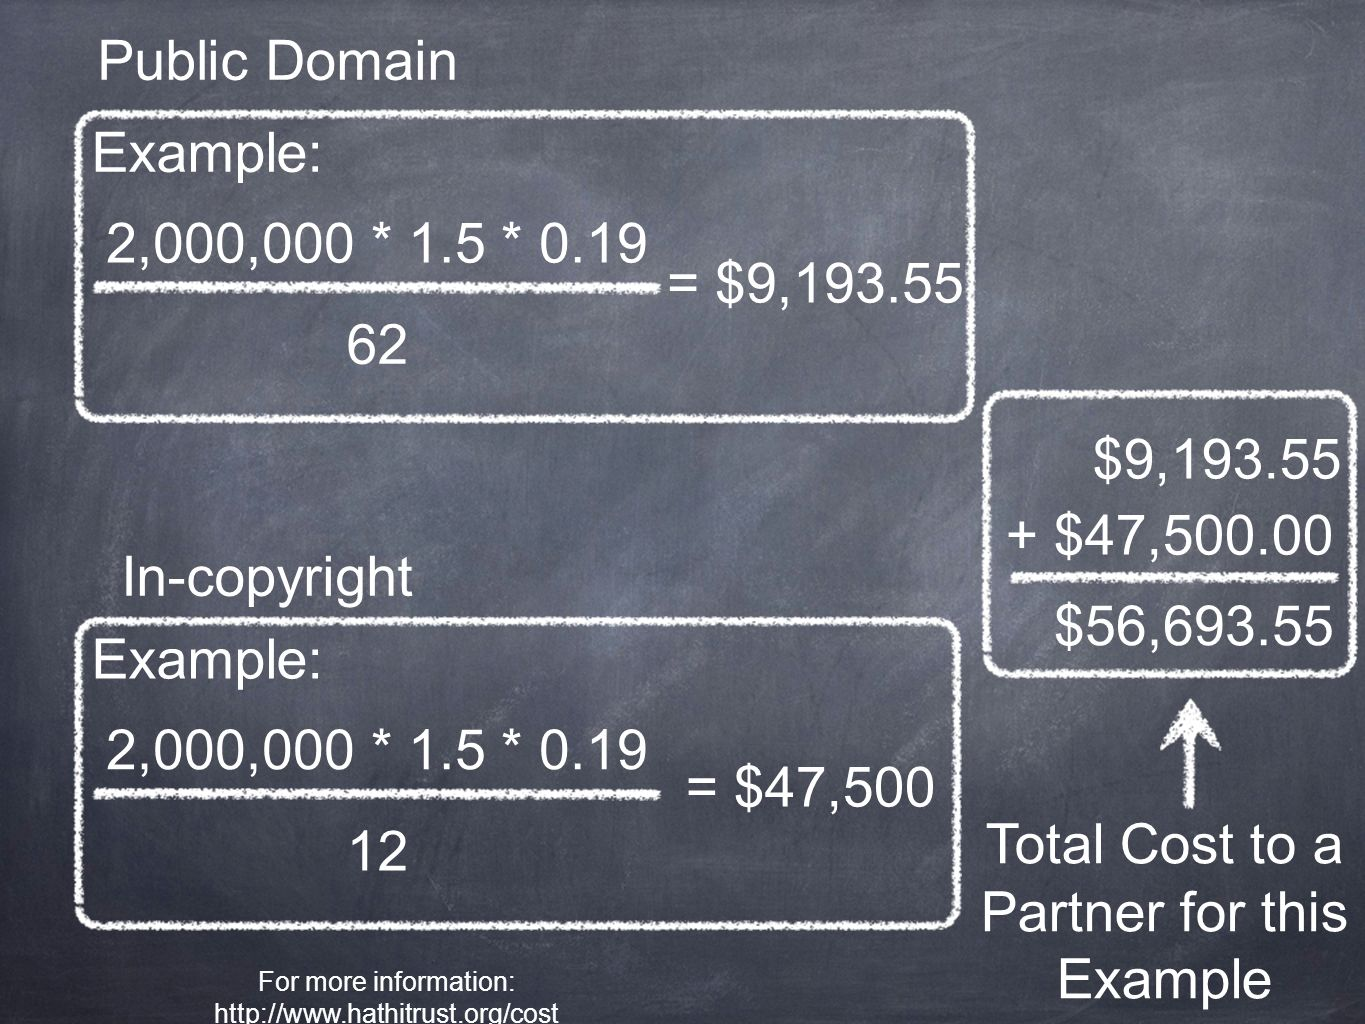 Total Cost to a Partner for this Example 12